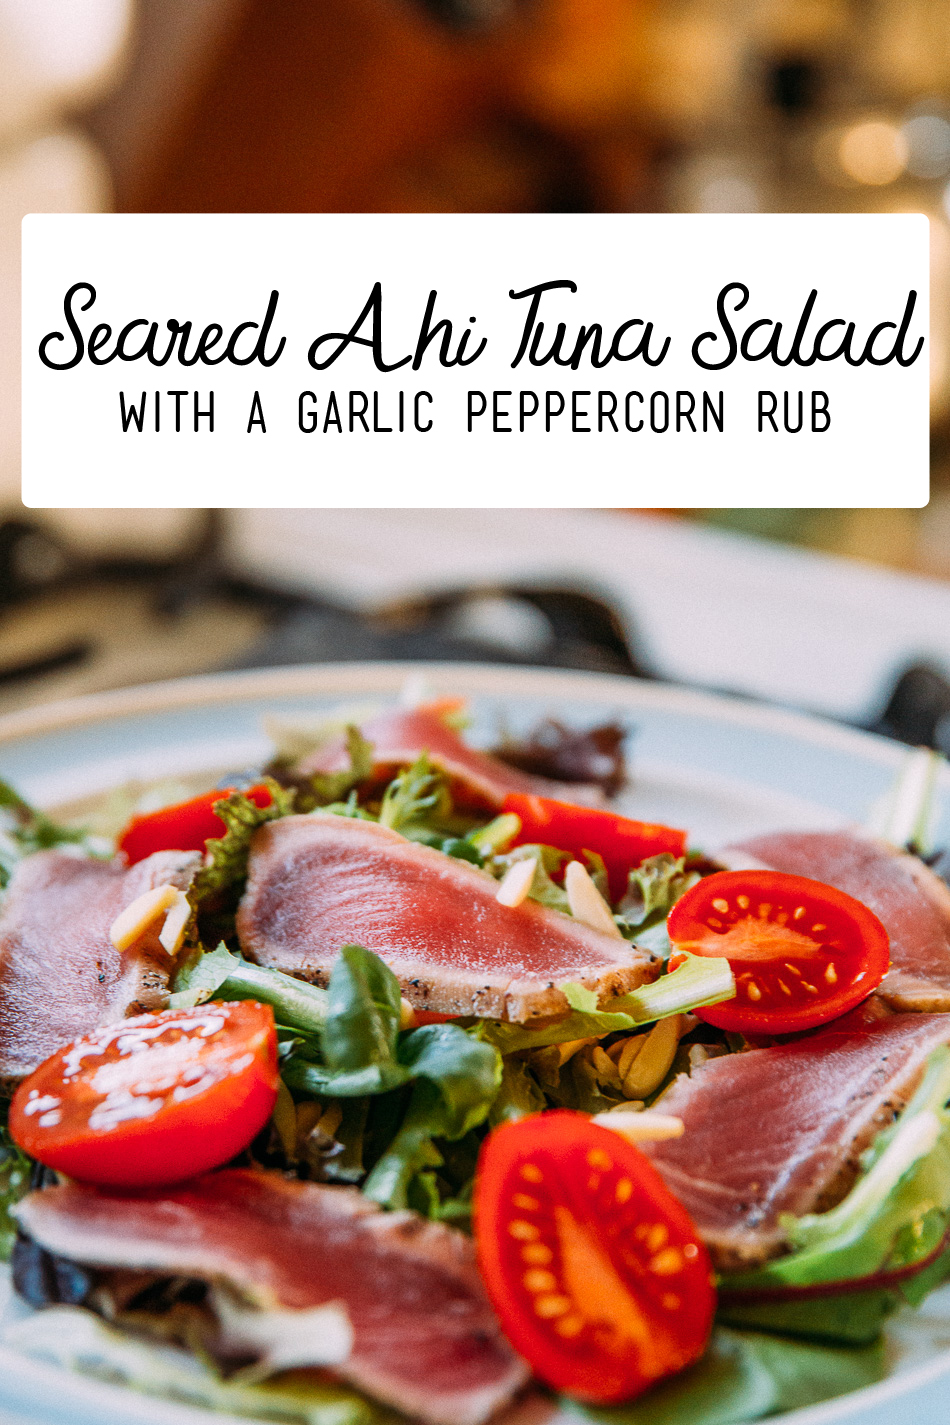 Seared Ahi Tuna Salad // livelovesimple.com